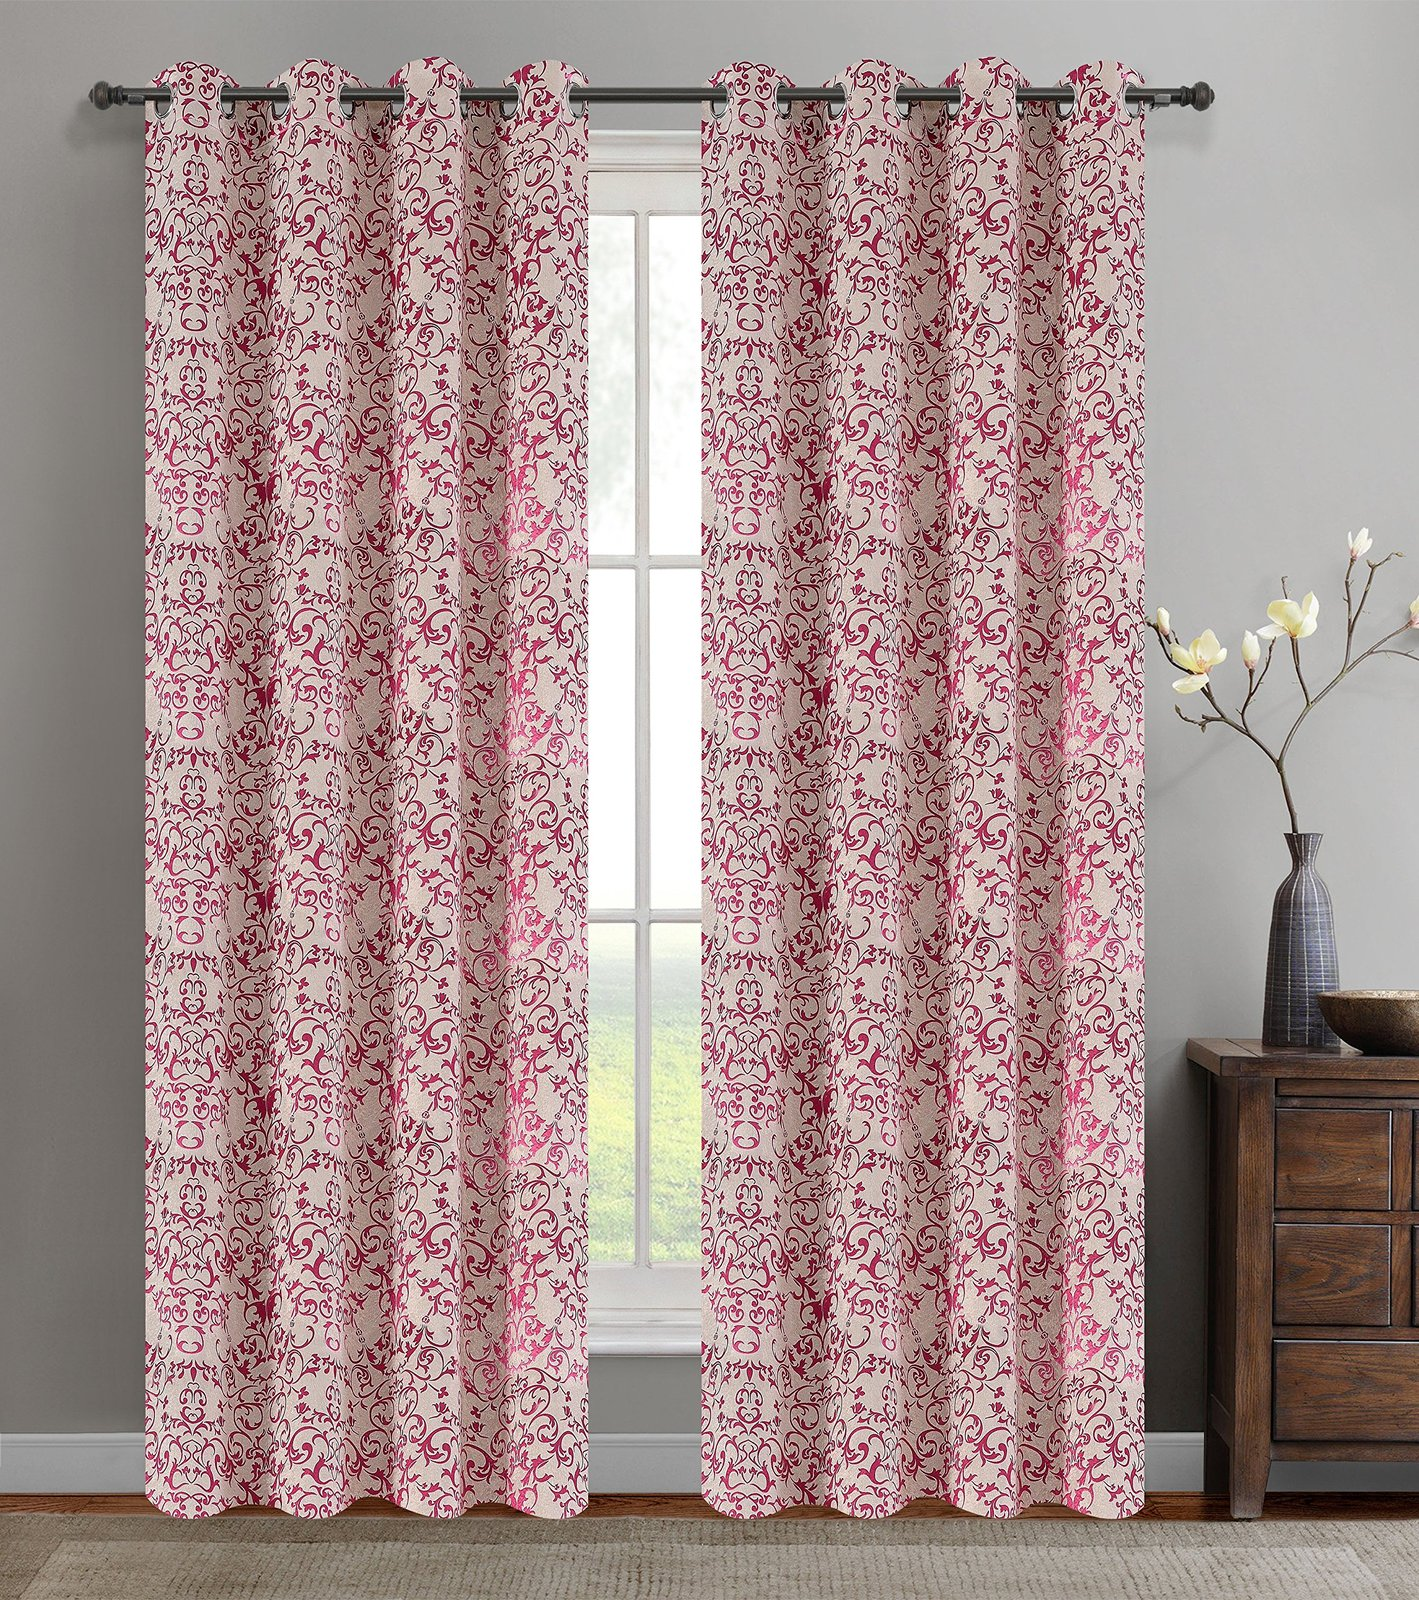 Urbanest 50-inch by 84-inch Set of 2 Jacquard Vine Drapery Curtain Panel with Gr